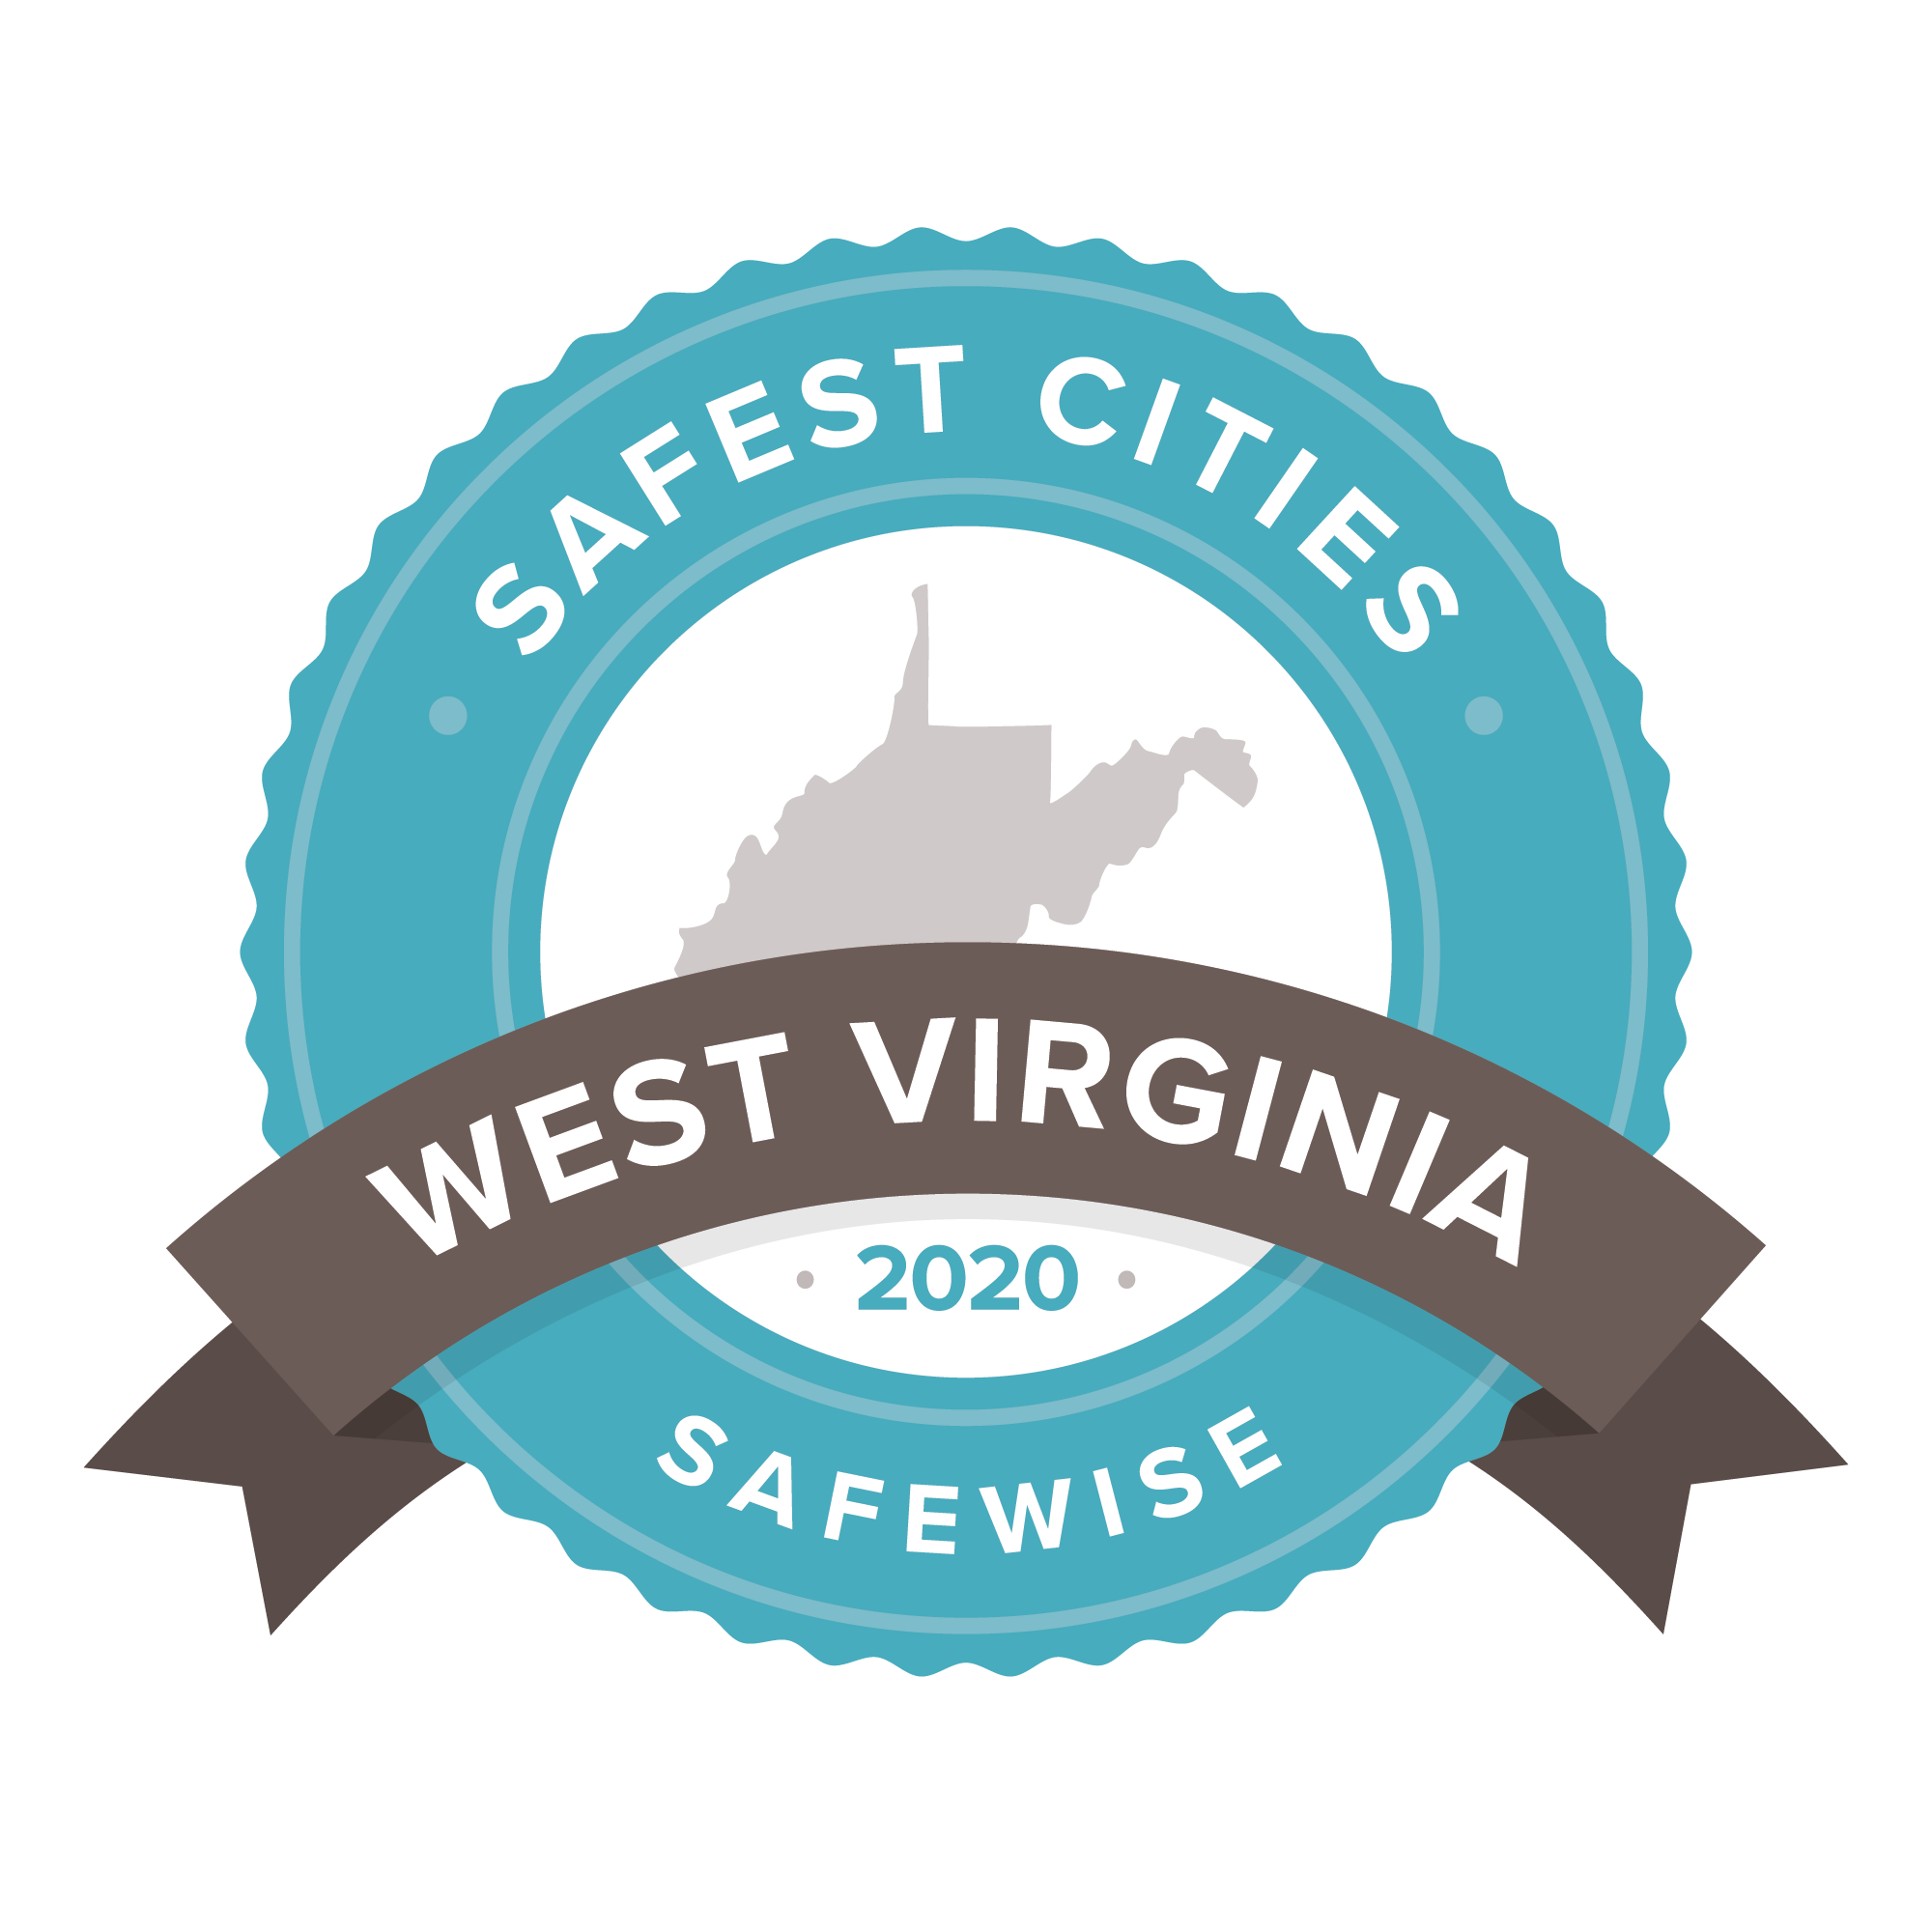 SafeWise Safest Cities in West Virginia 2020 badge